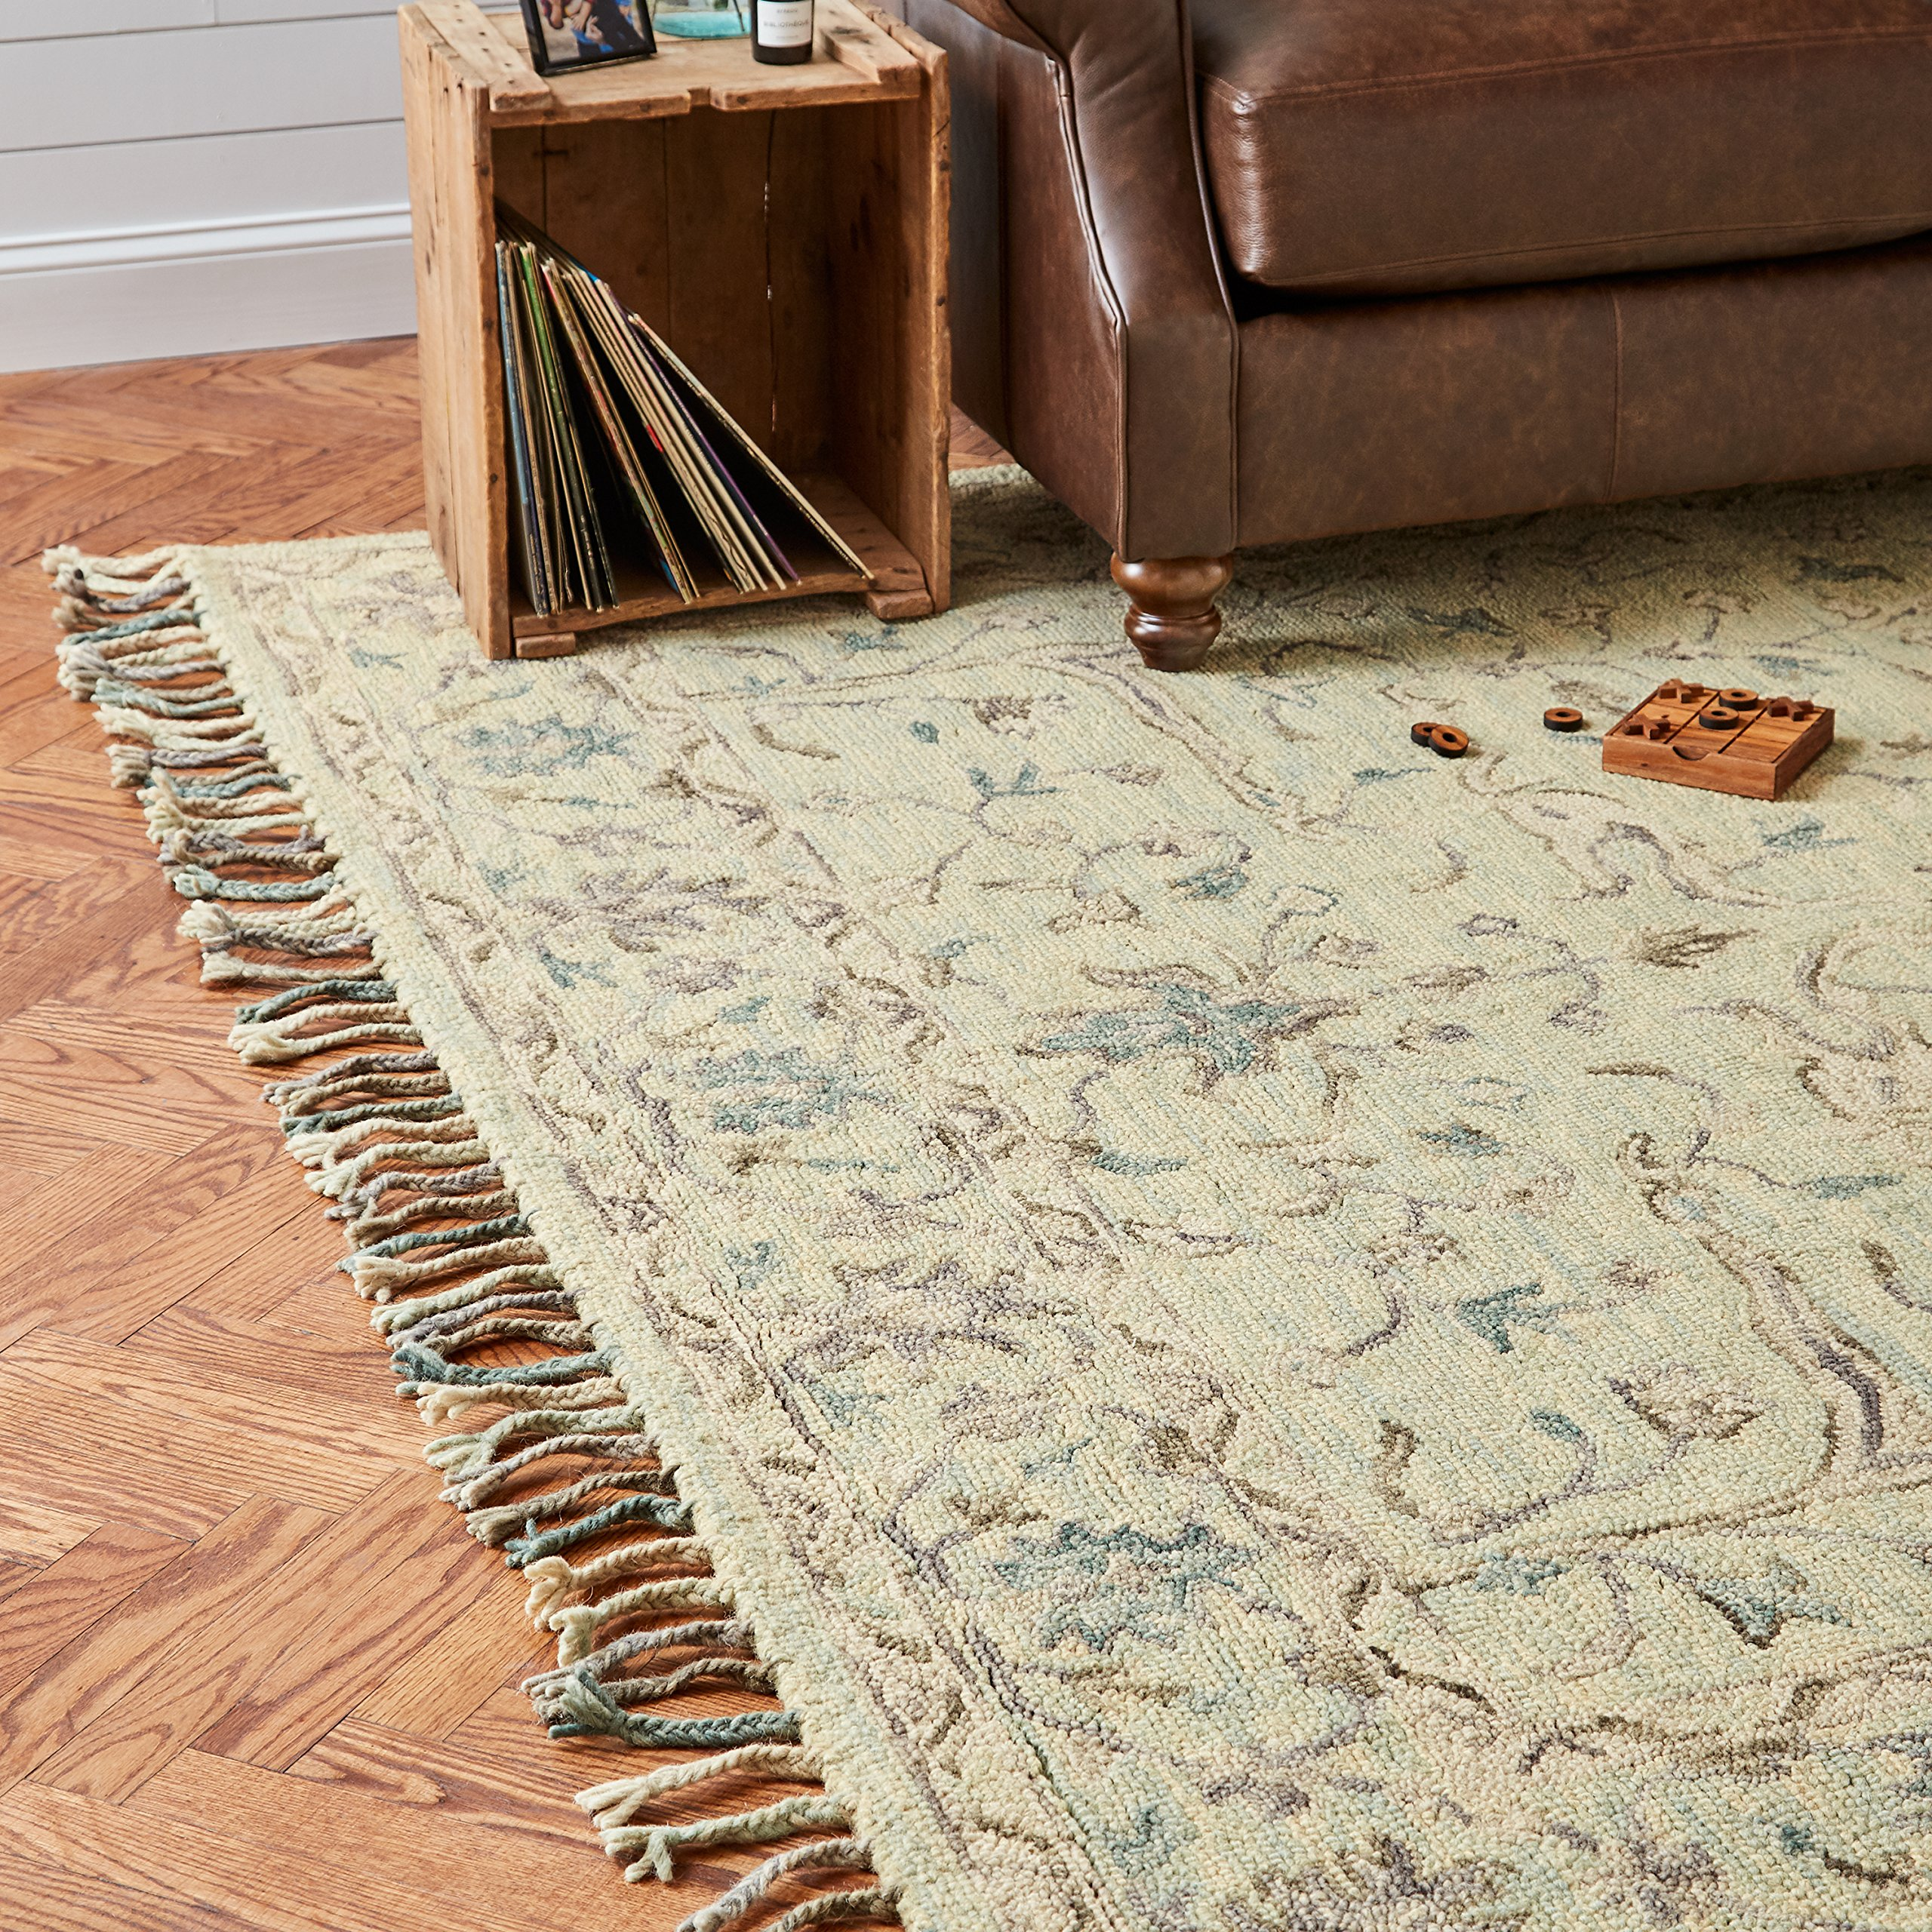 Stone & Beam Serene Transitional Wool Area Rug, 8' x 10', Multi by Stone & Beam (Image #3)